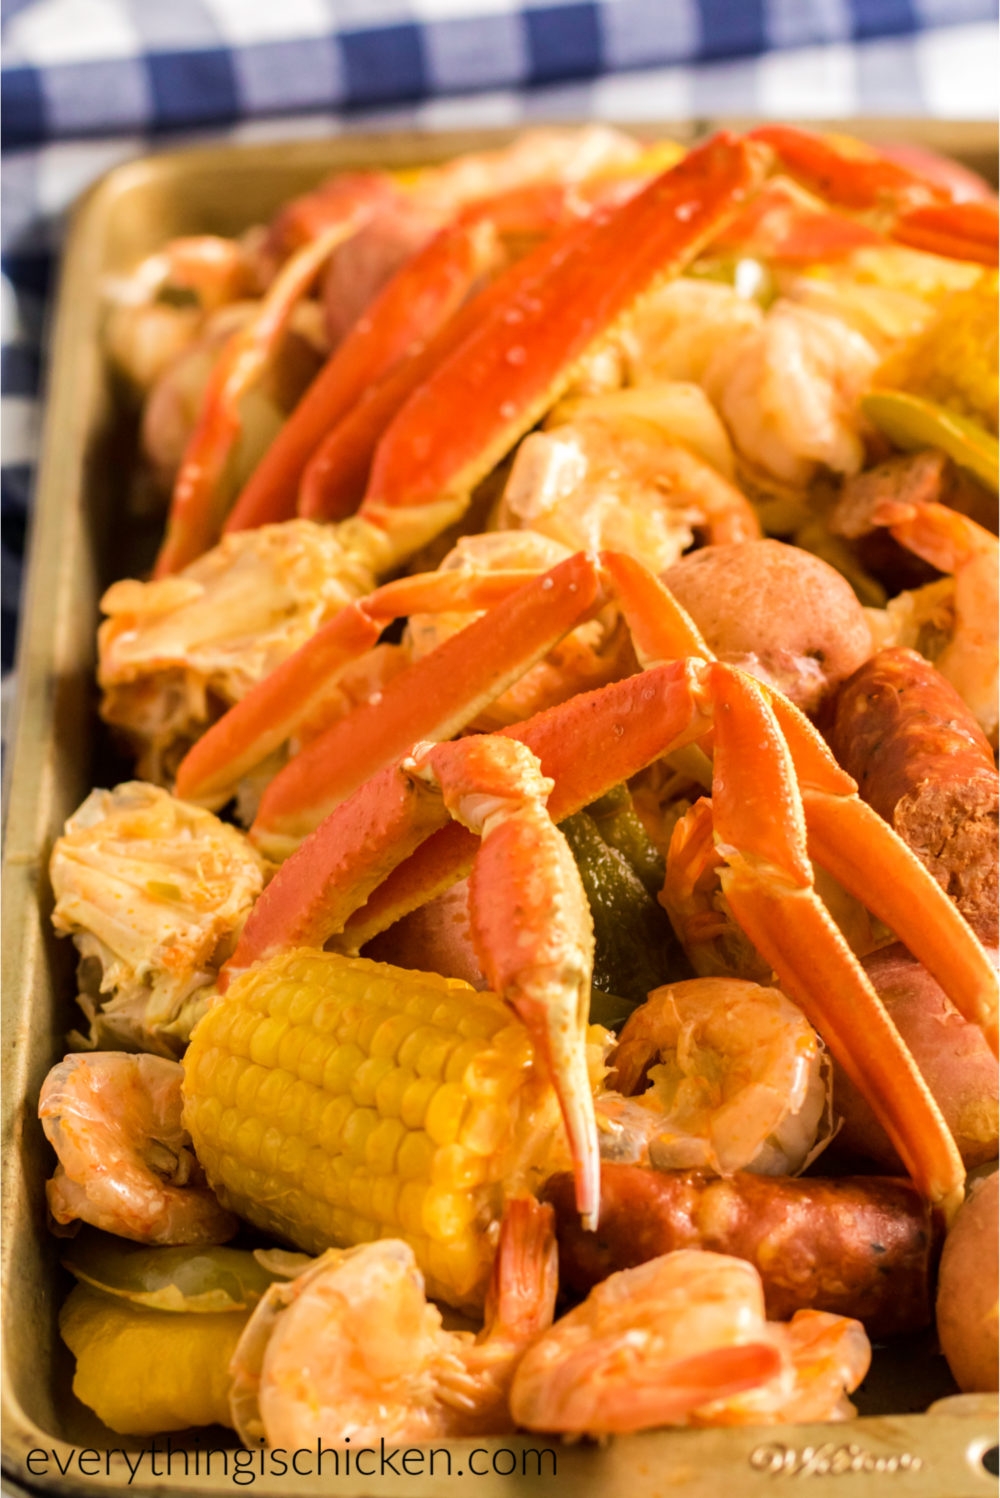 Corn and shrimp, crab, and Aidell's sausage ready to serve.